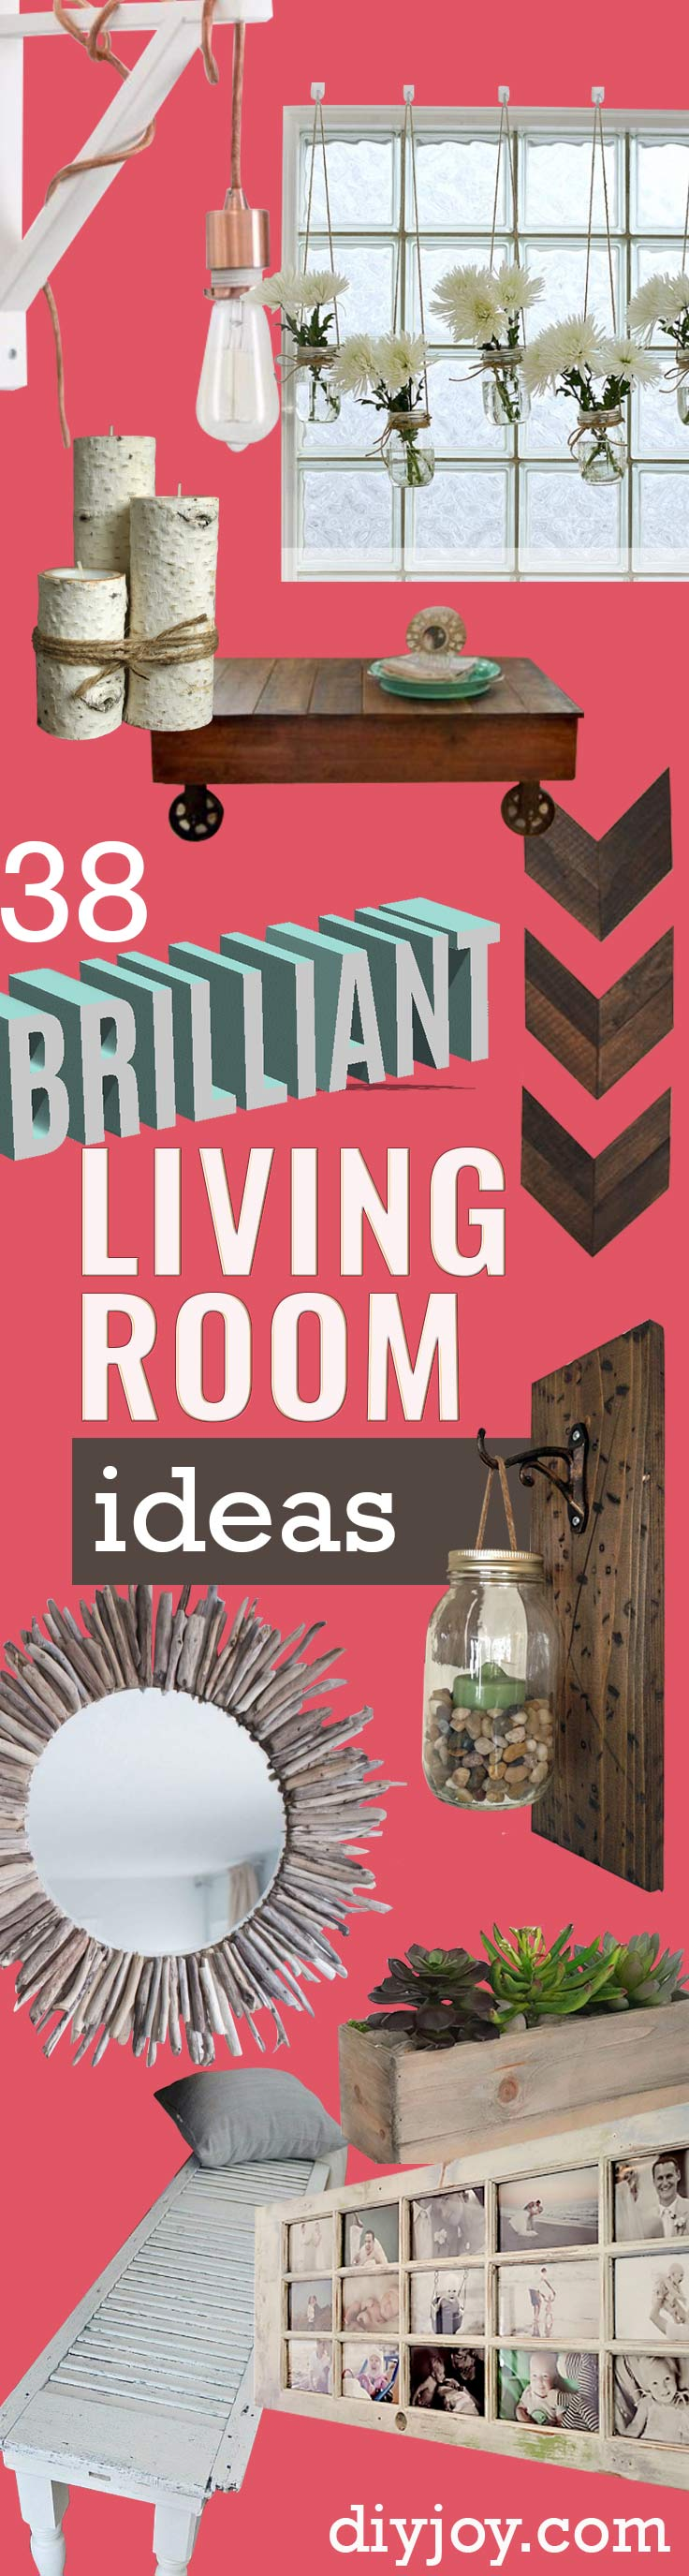 38 brilliant diy living room decor ideas page 2 of 7 diy joy Living room ideas diy